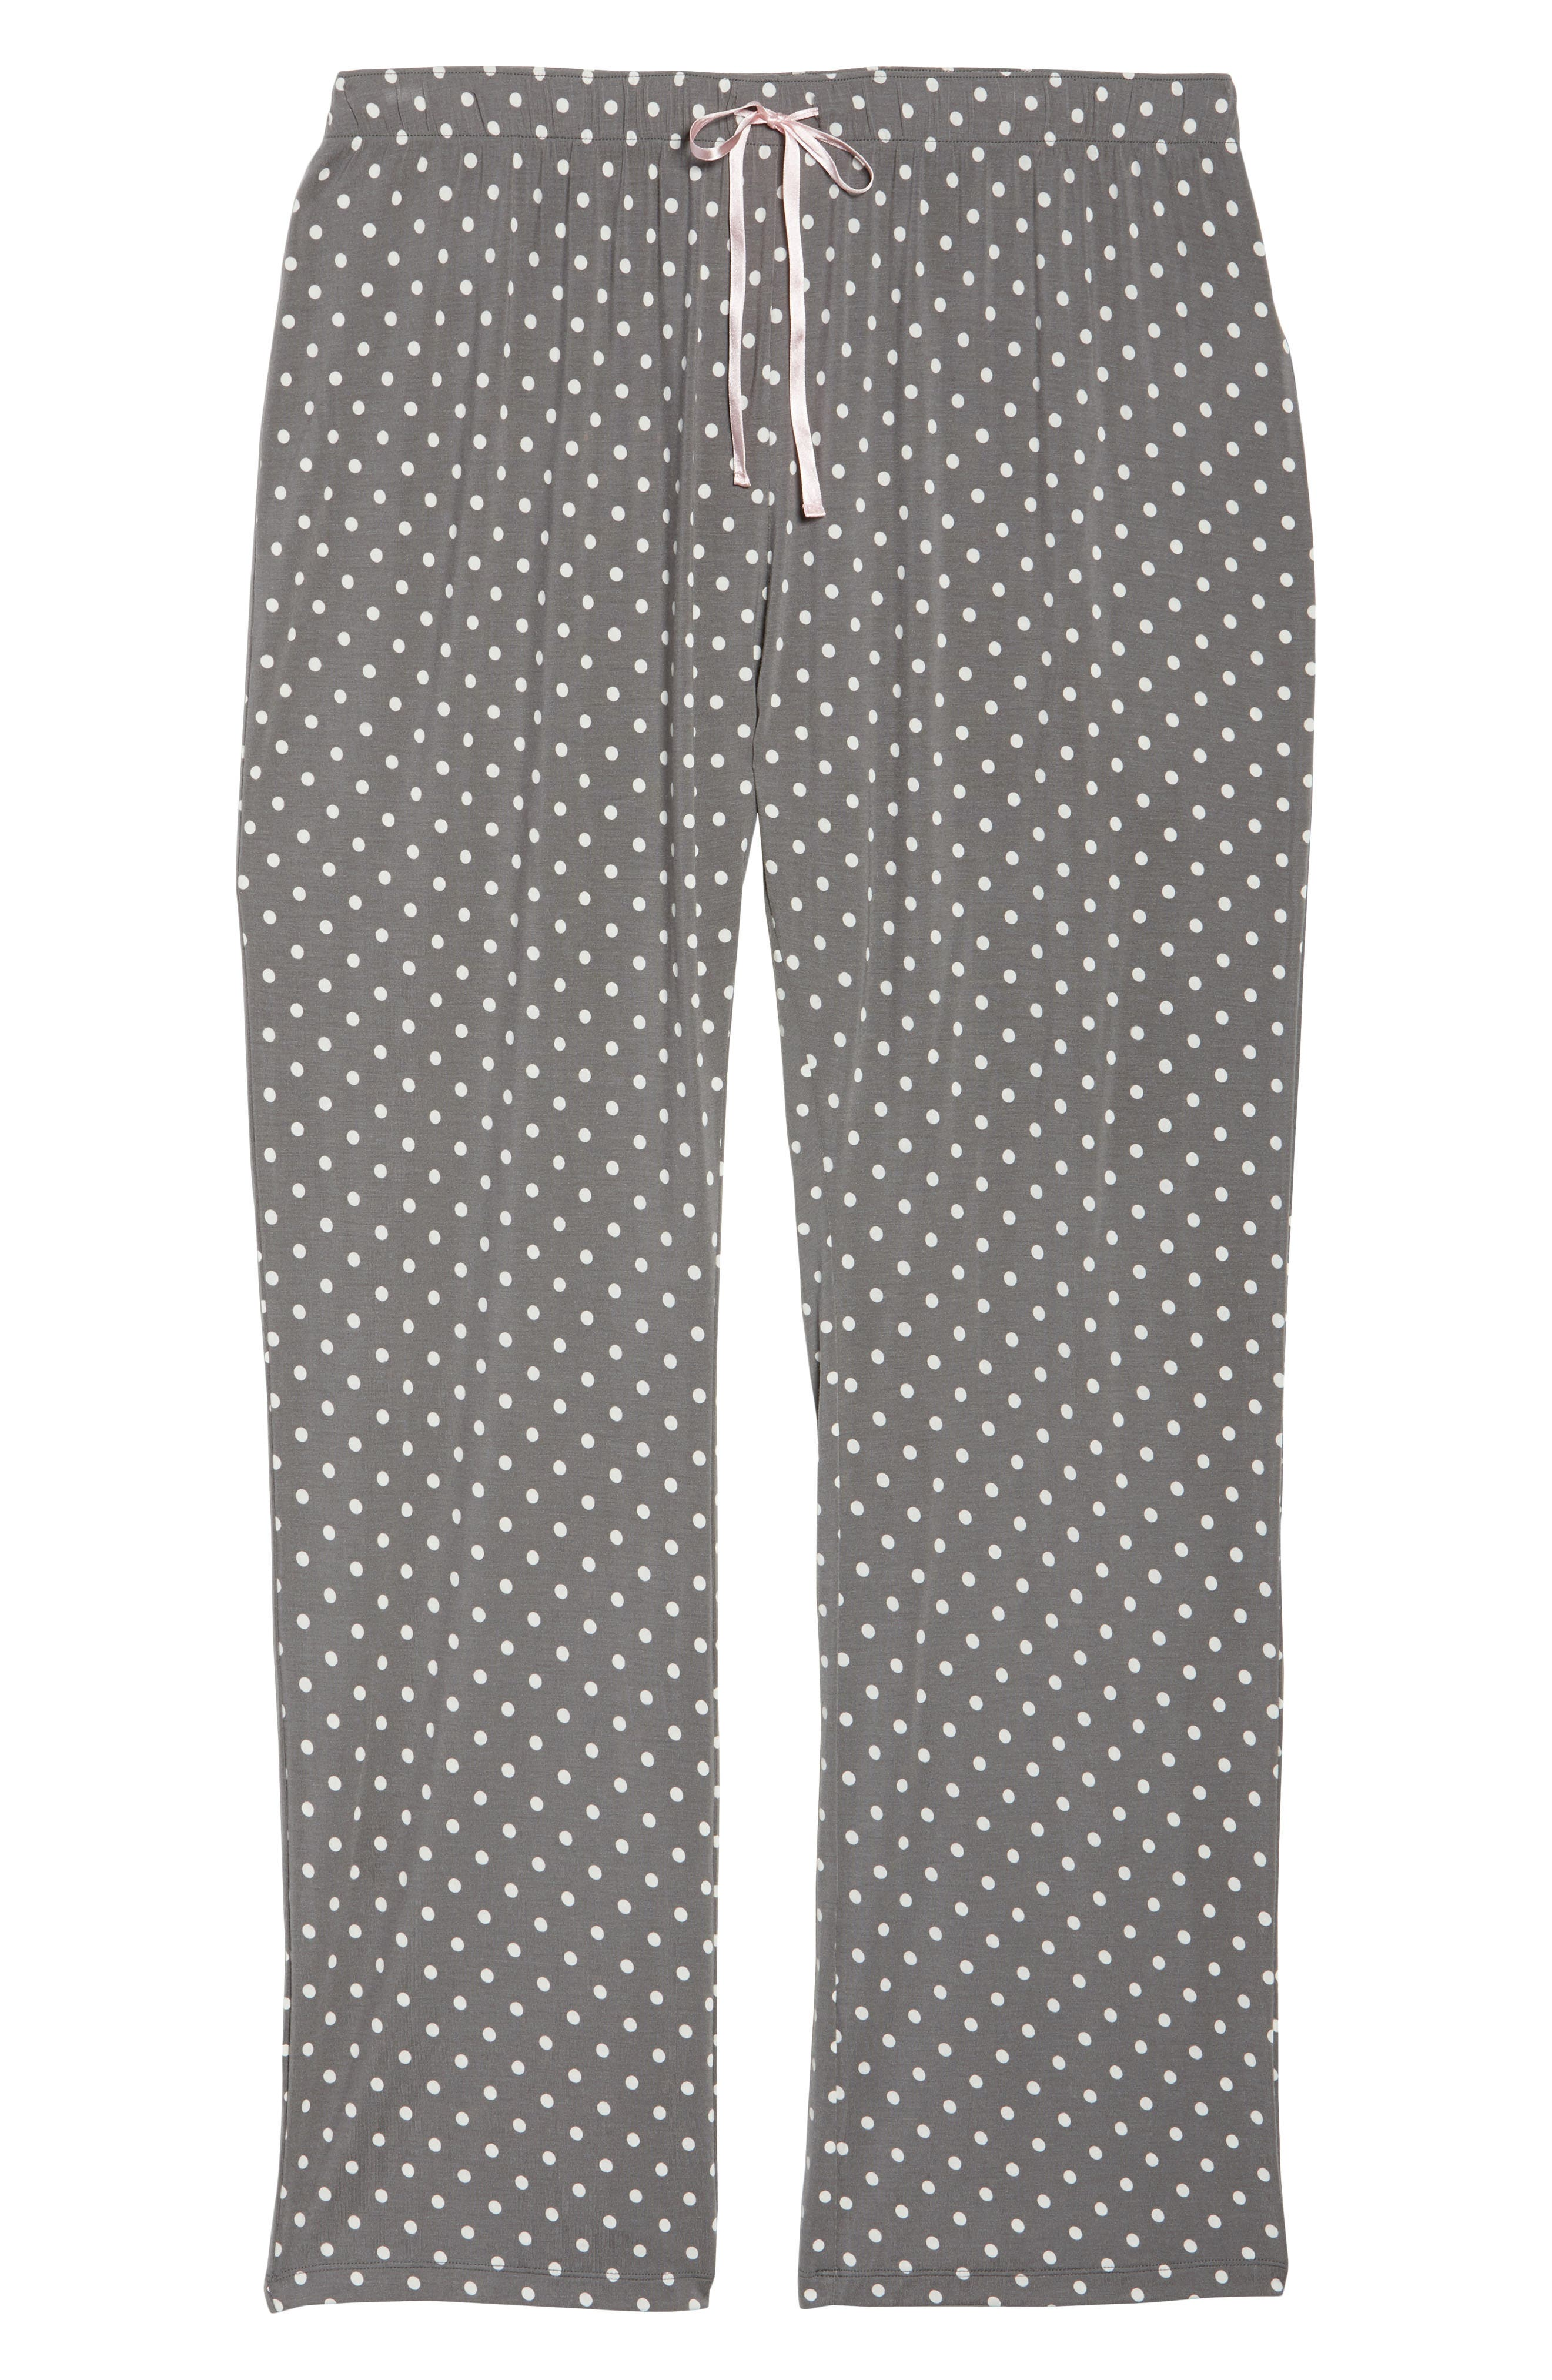 PJ Salvage Polka Dot Pajama Pants (Plus Size)